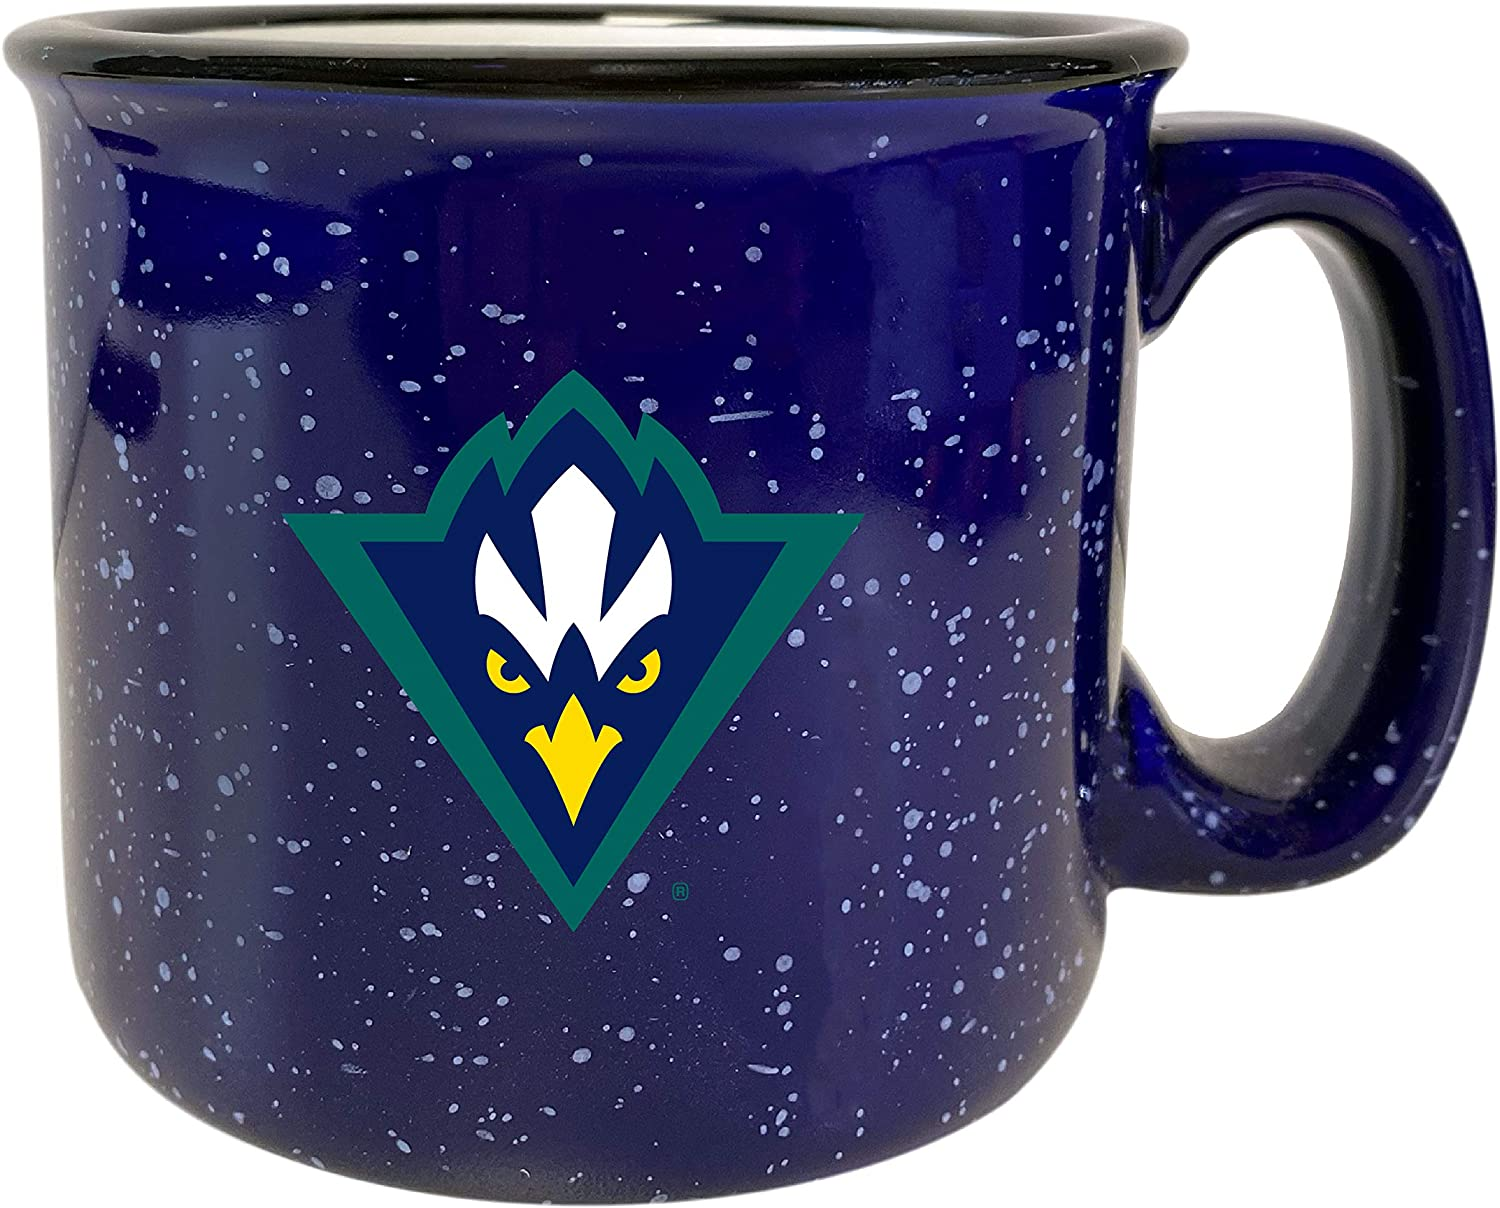 North Carolina Wilmington Seahawks Speckled Ceramic Camper Coffee Mug Navy